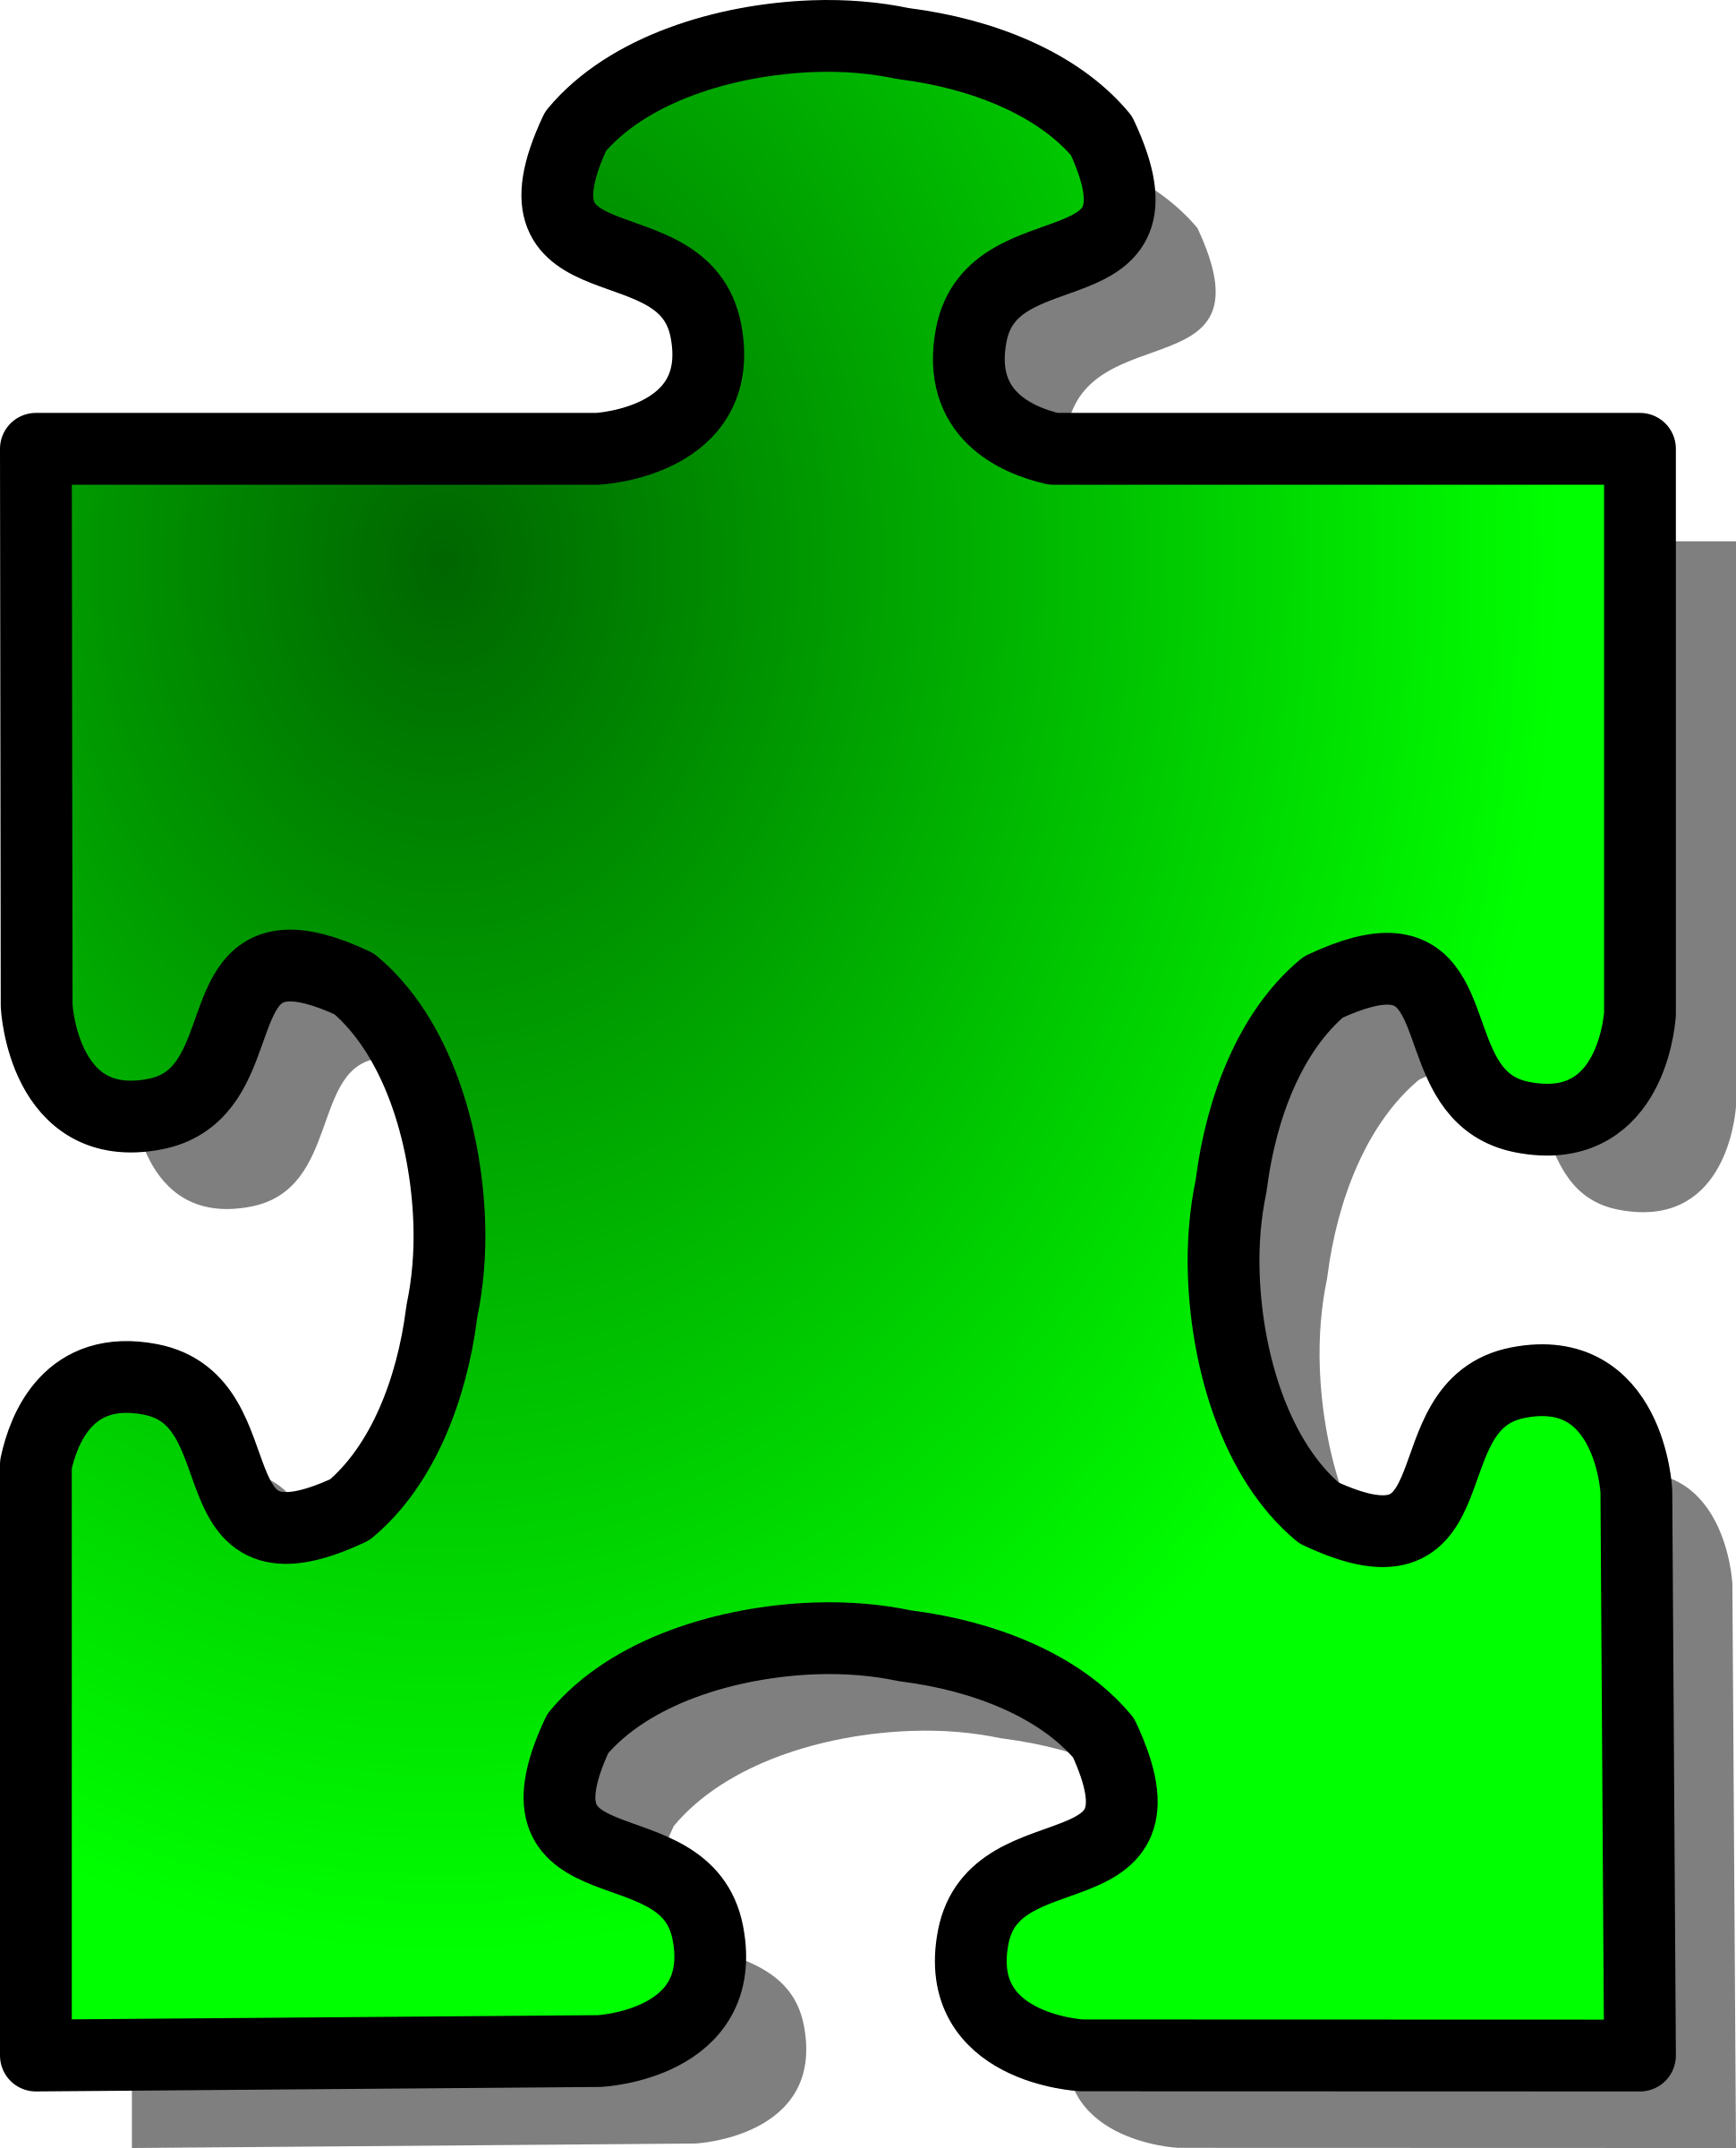 Green Jigsaw piece 13 by nicubunu